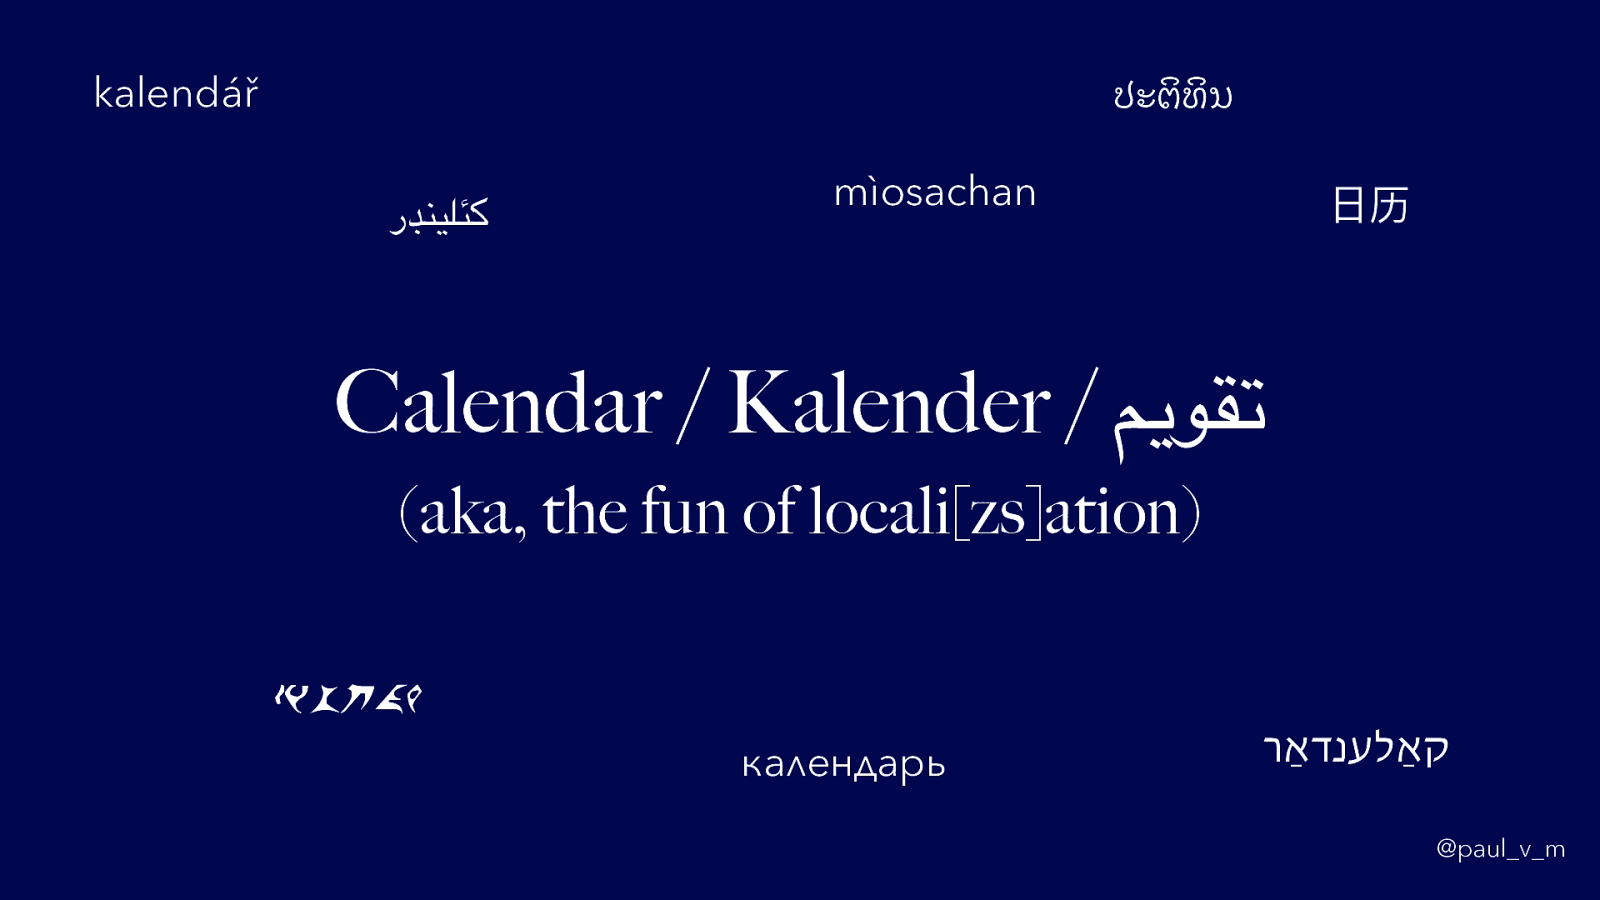 Calendar / Kalender / تقويم (aka, the fun of locali[zs]ation)